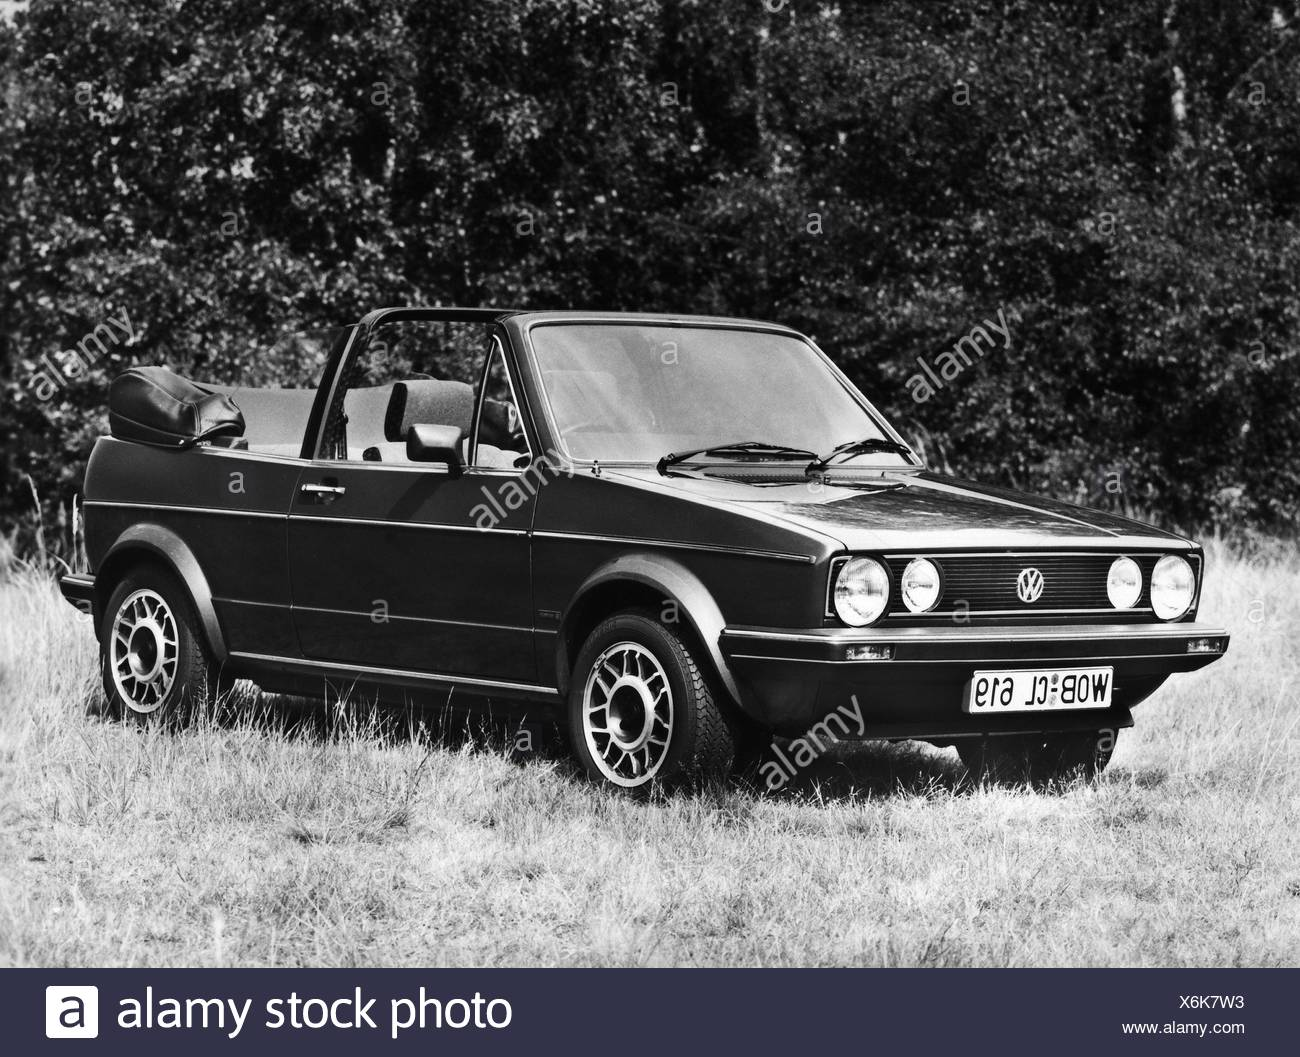 transport / transportation, car, vehicle variants, Volkswagen, VW Golf Mk2 convertible, 1980s, Additional-Rights-Clearences-NA - Stock Image